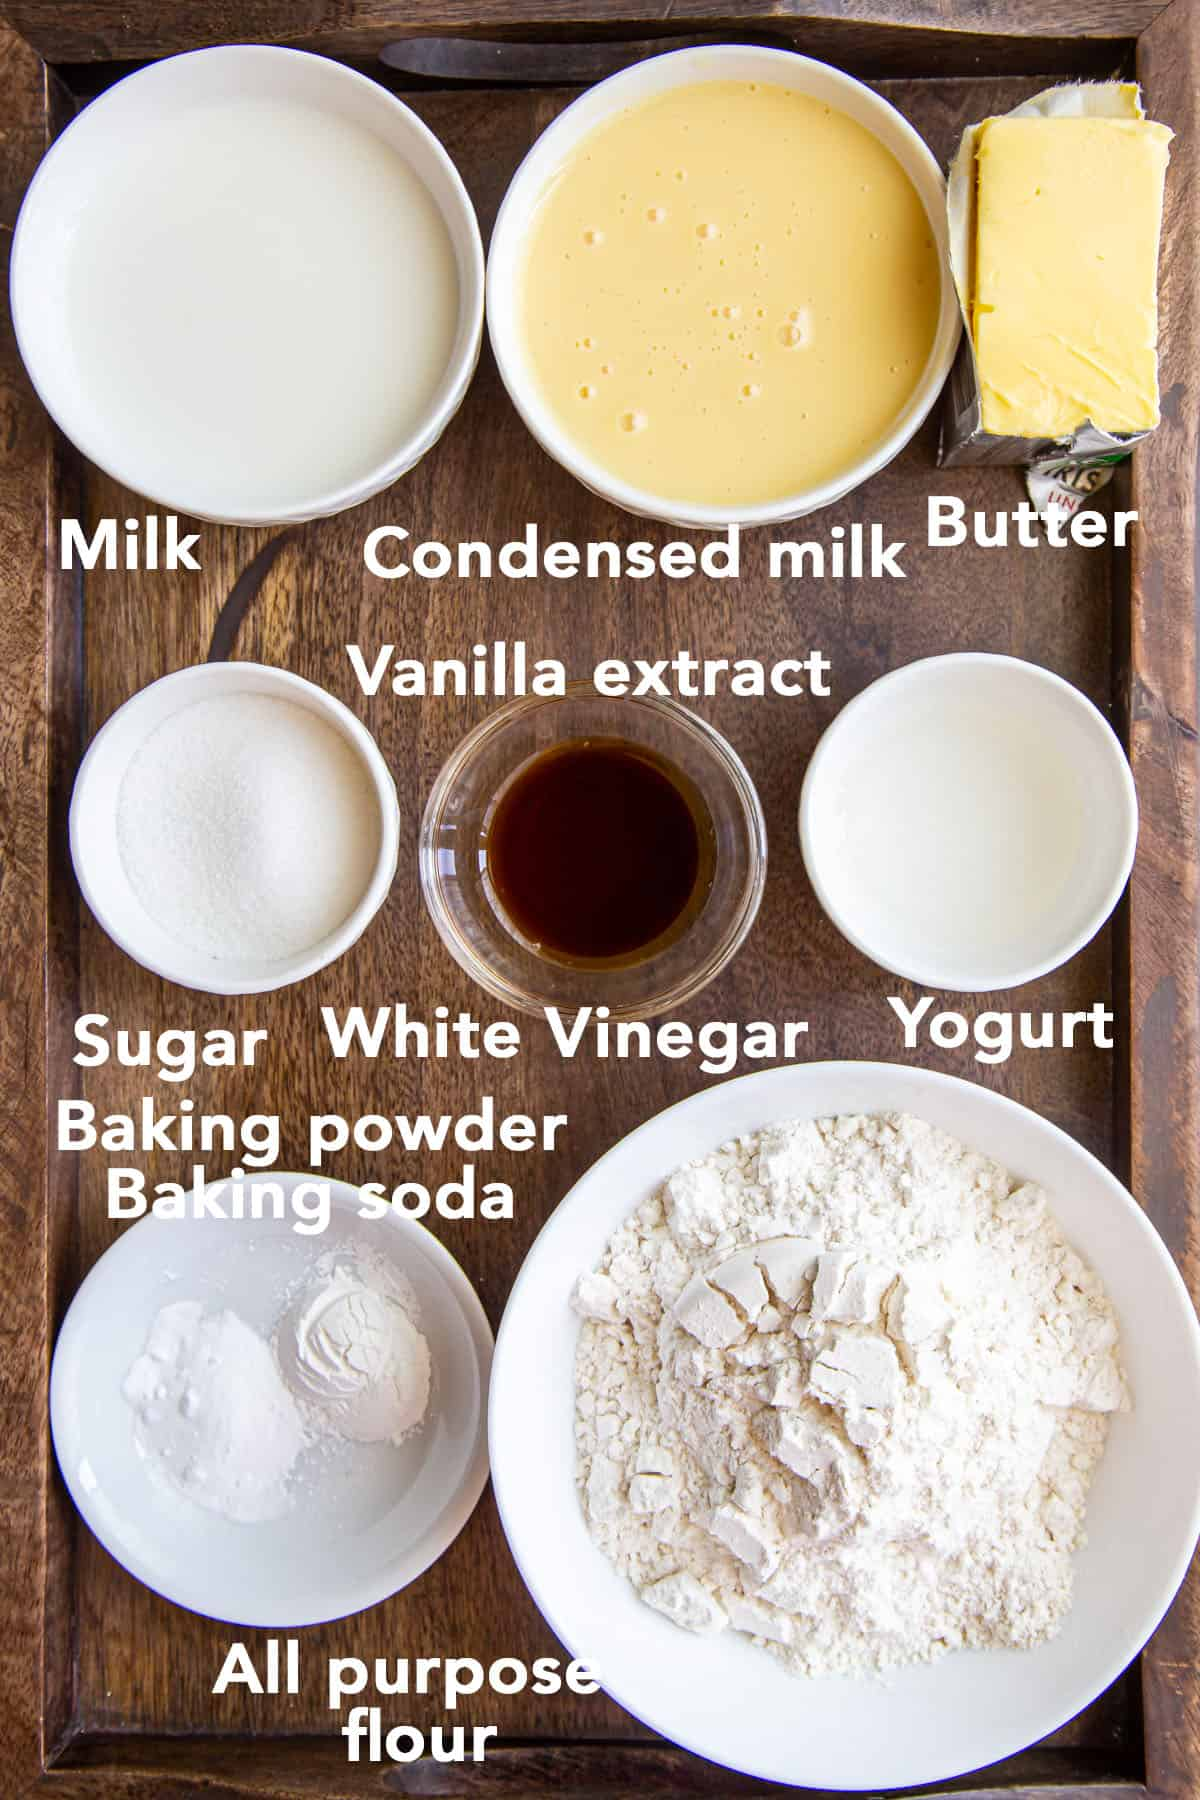 Ingredients for Eggless Vanilla Sponge Cake in bowls on wooden surface